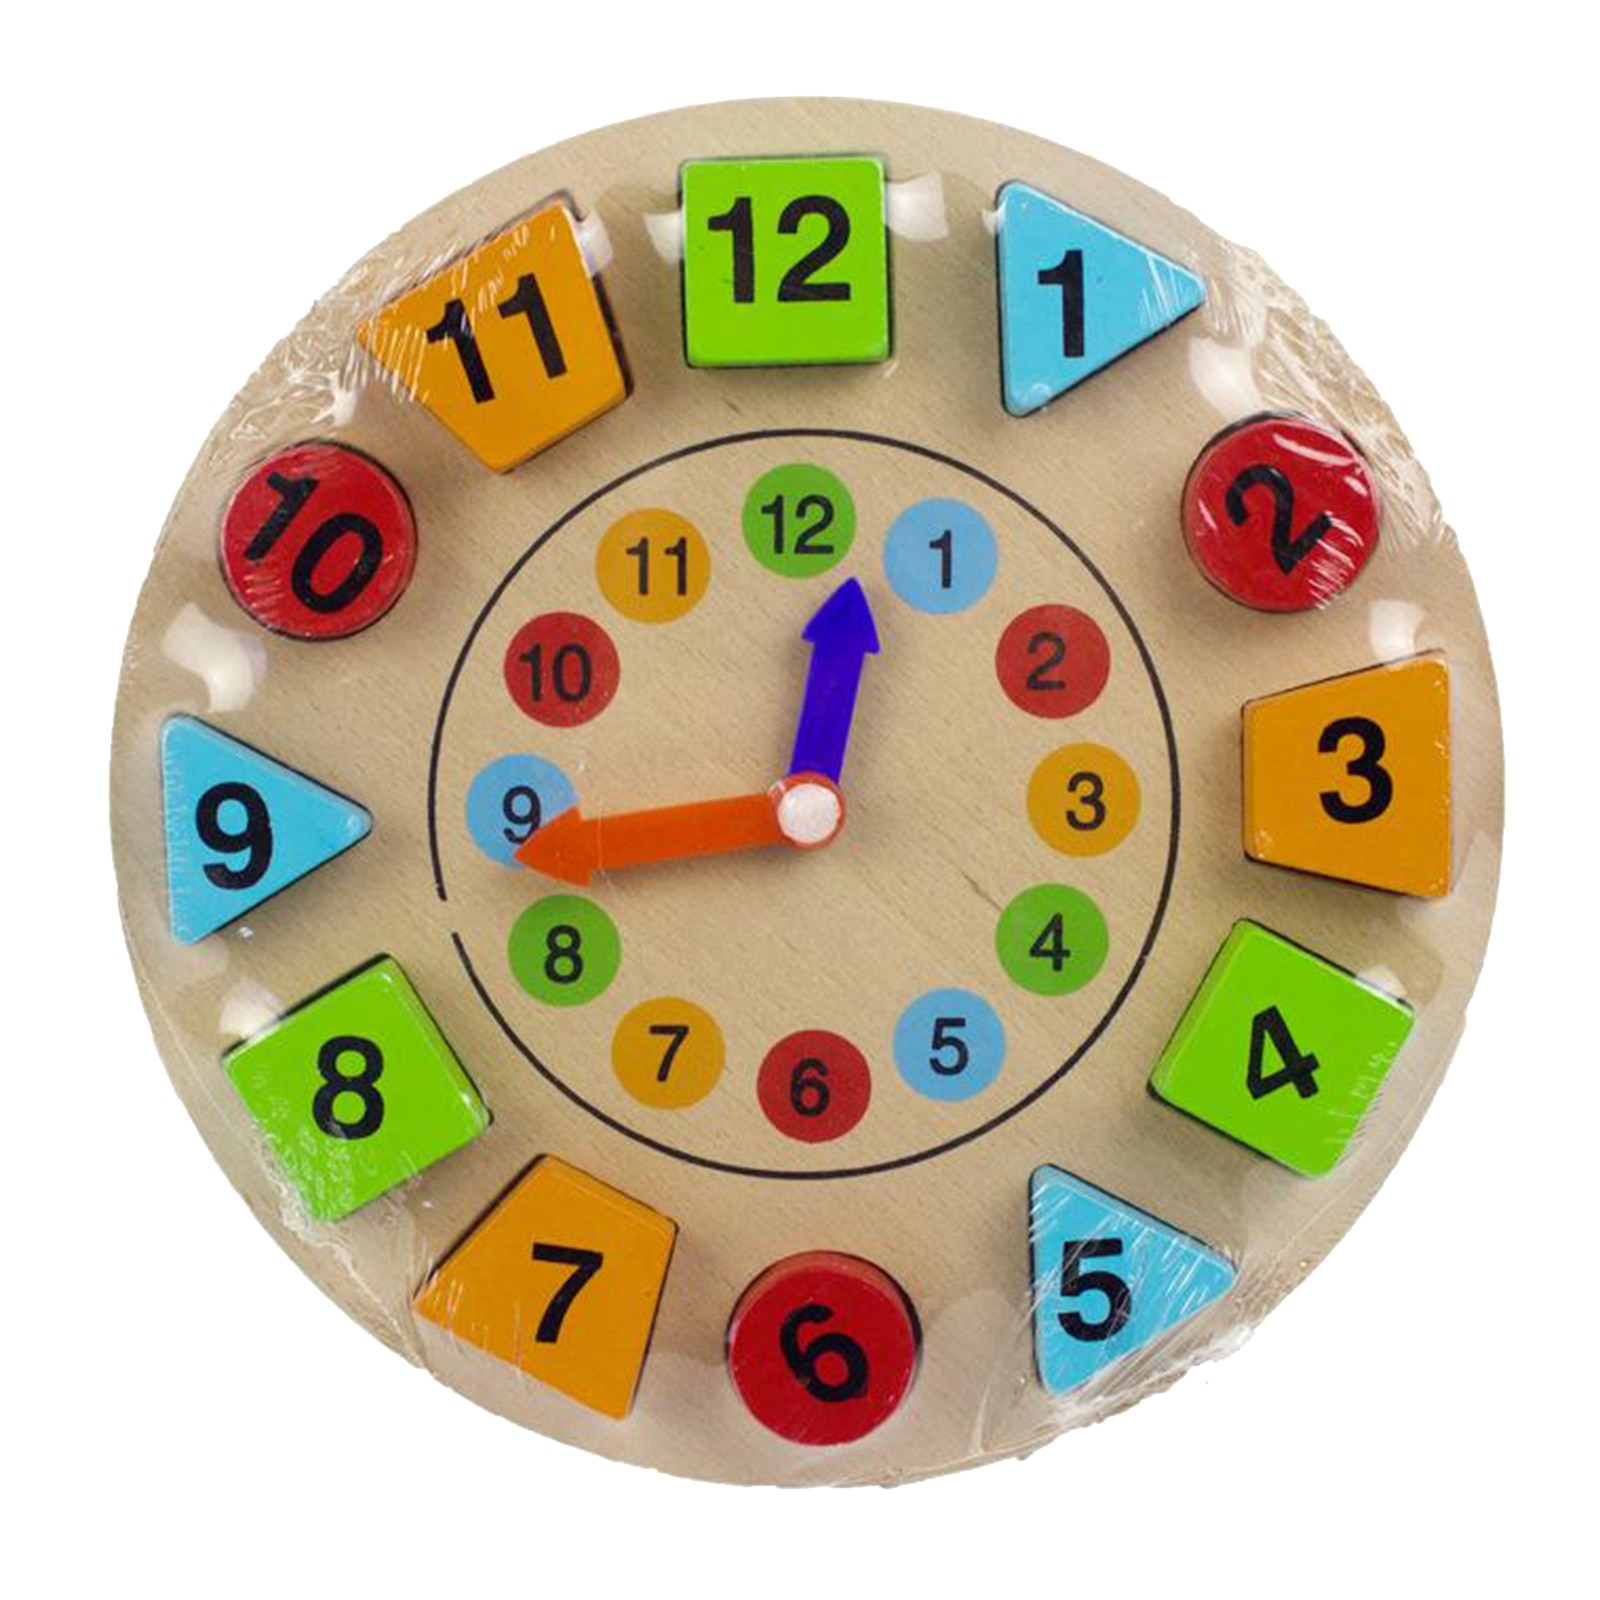 Home Wooden Kids Learning Clock Kids Learning to Tell Time Shape Color Sorting Clock Toys for Toddler Kids Baby Xmas Gifts